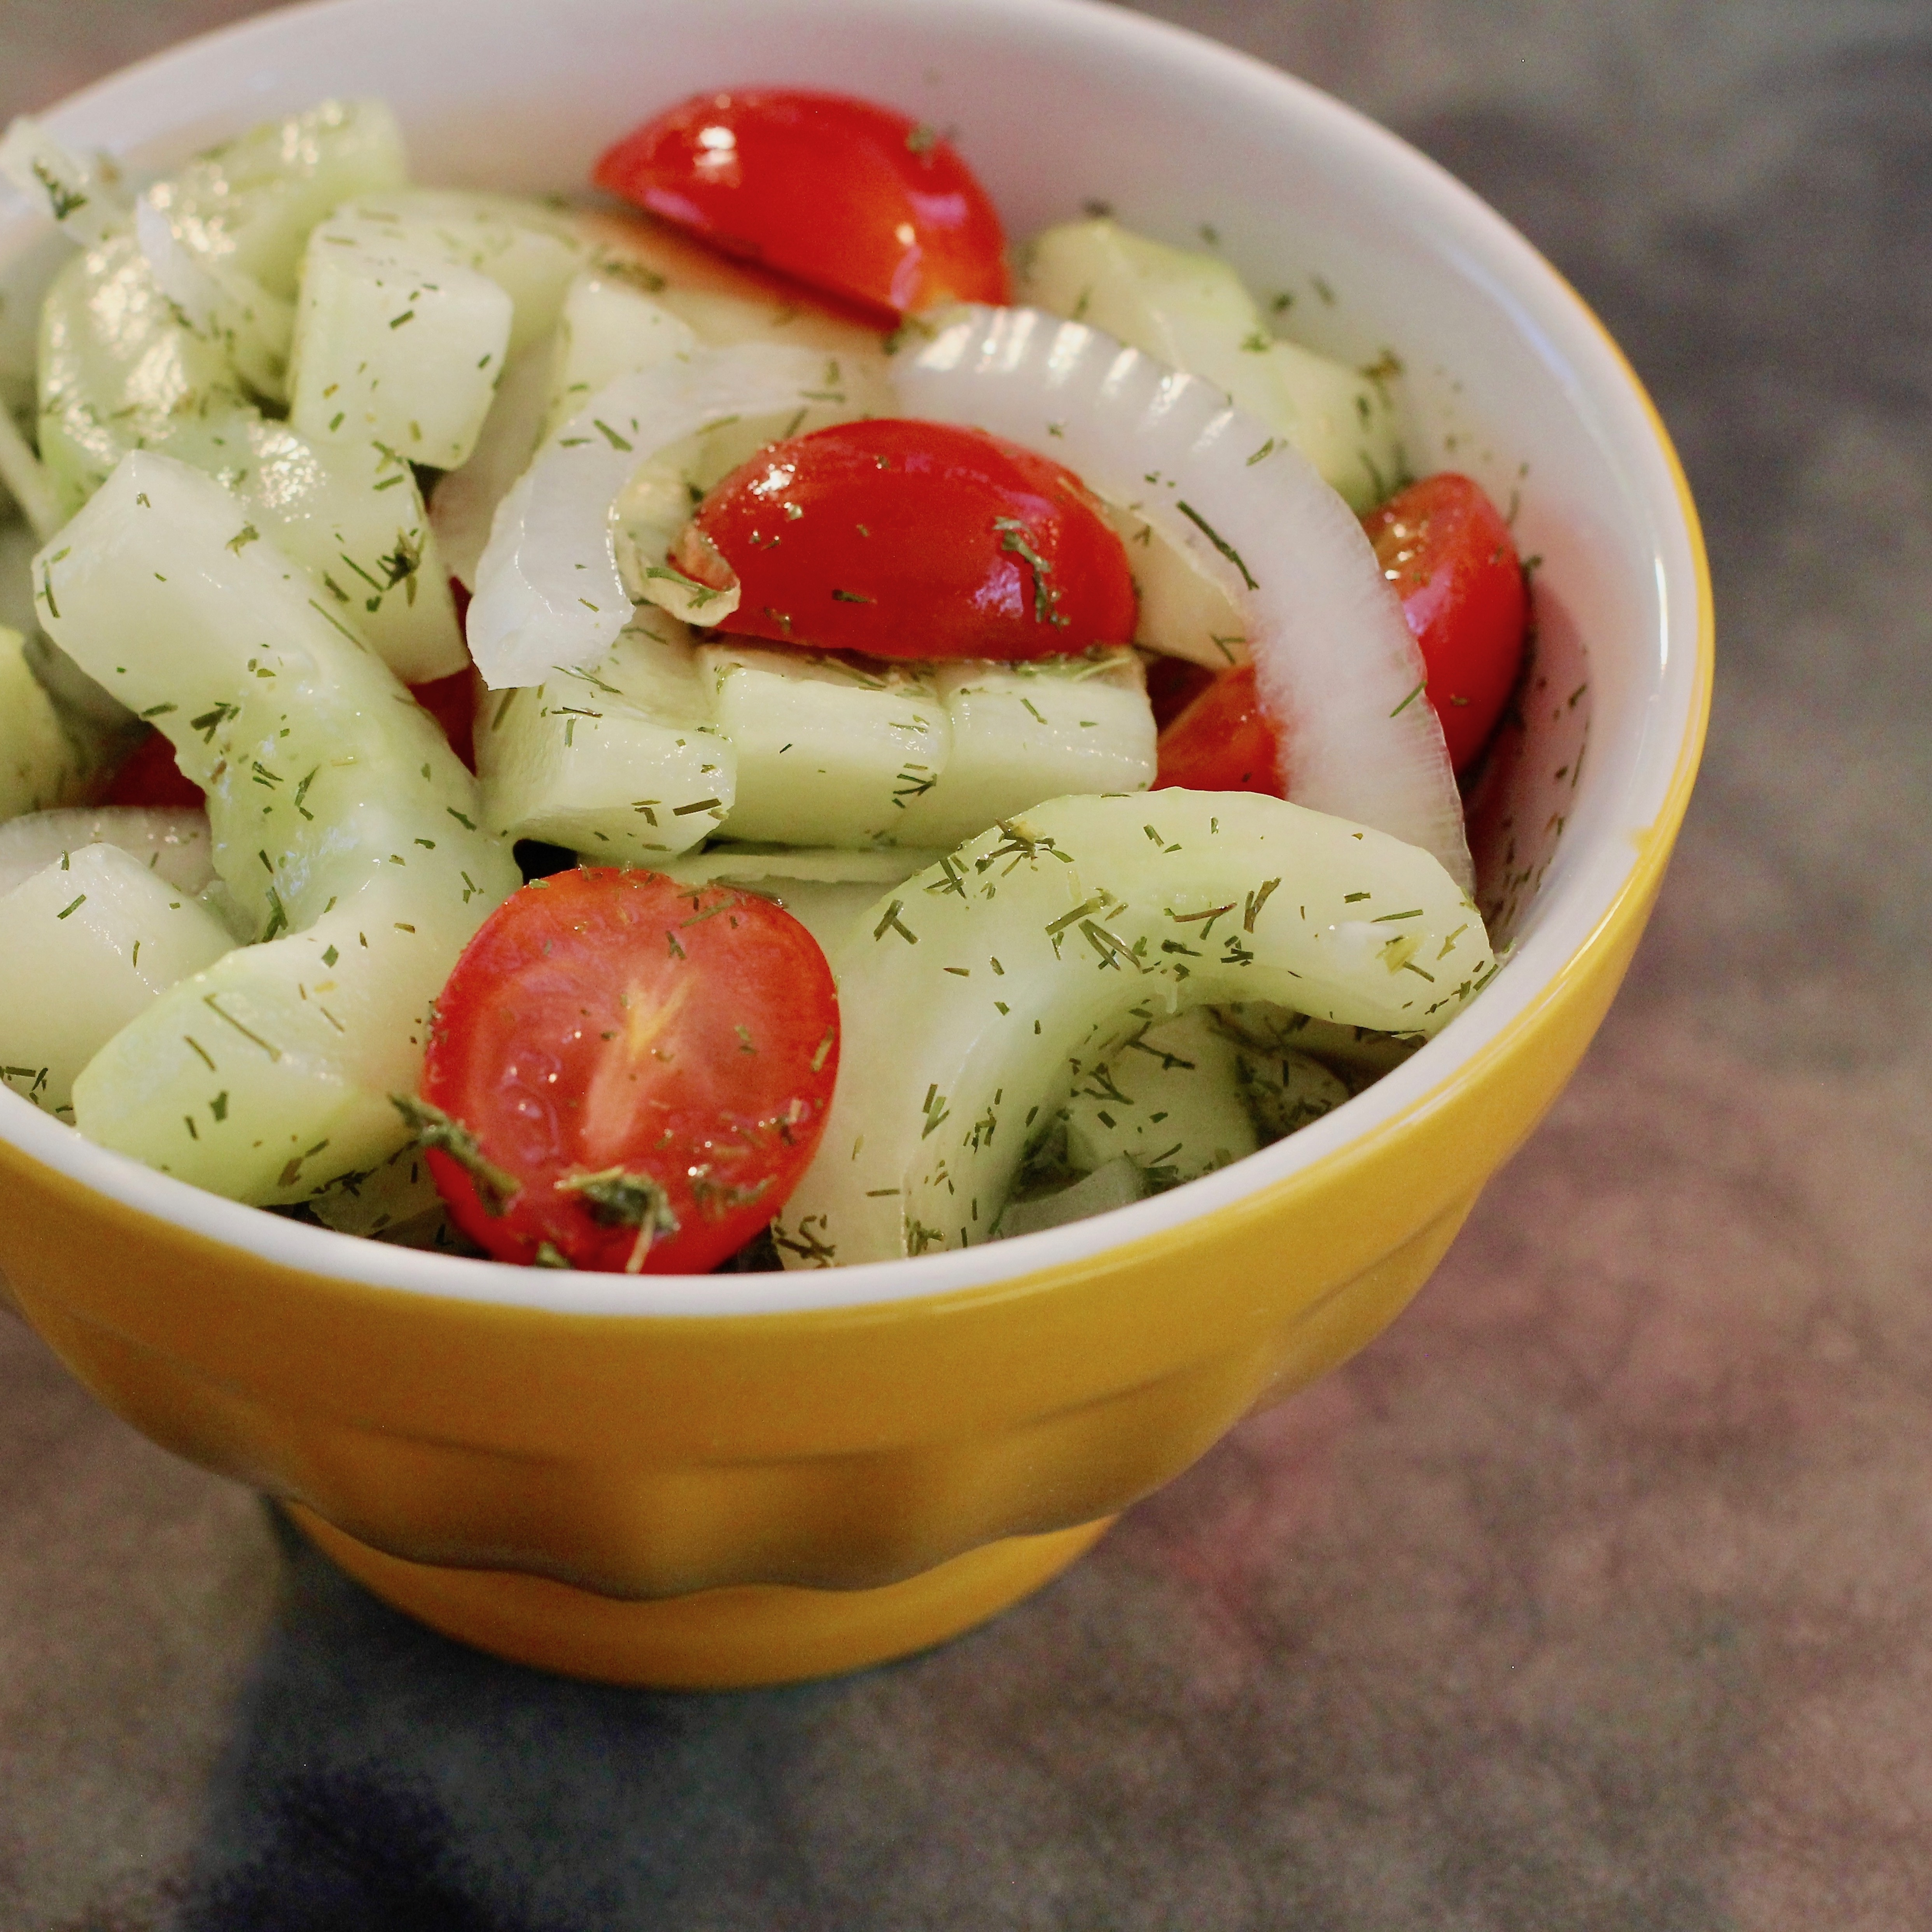 Cucumber Slices With Dill